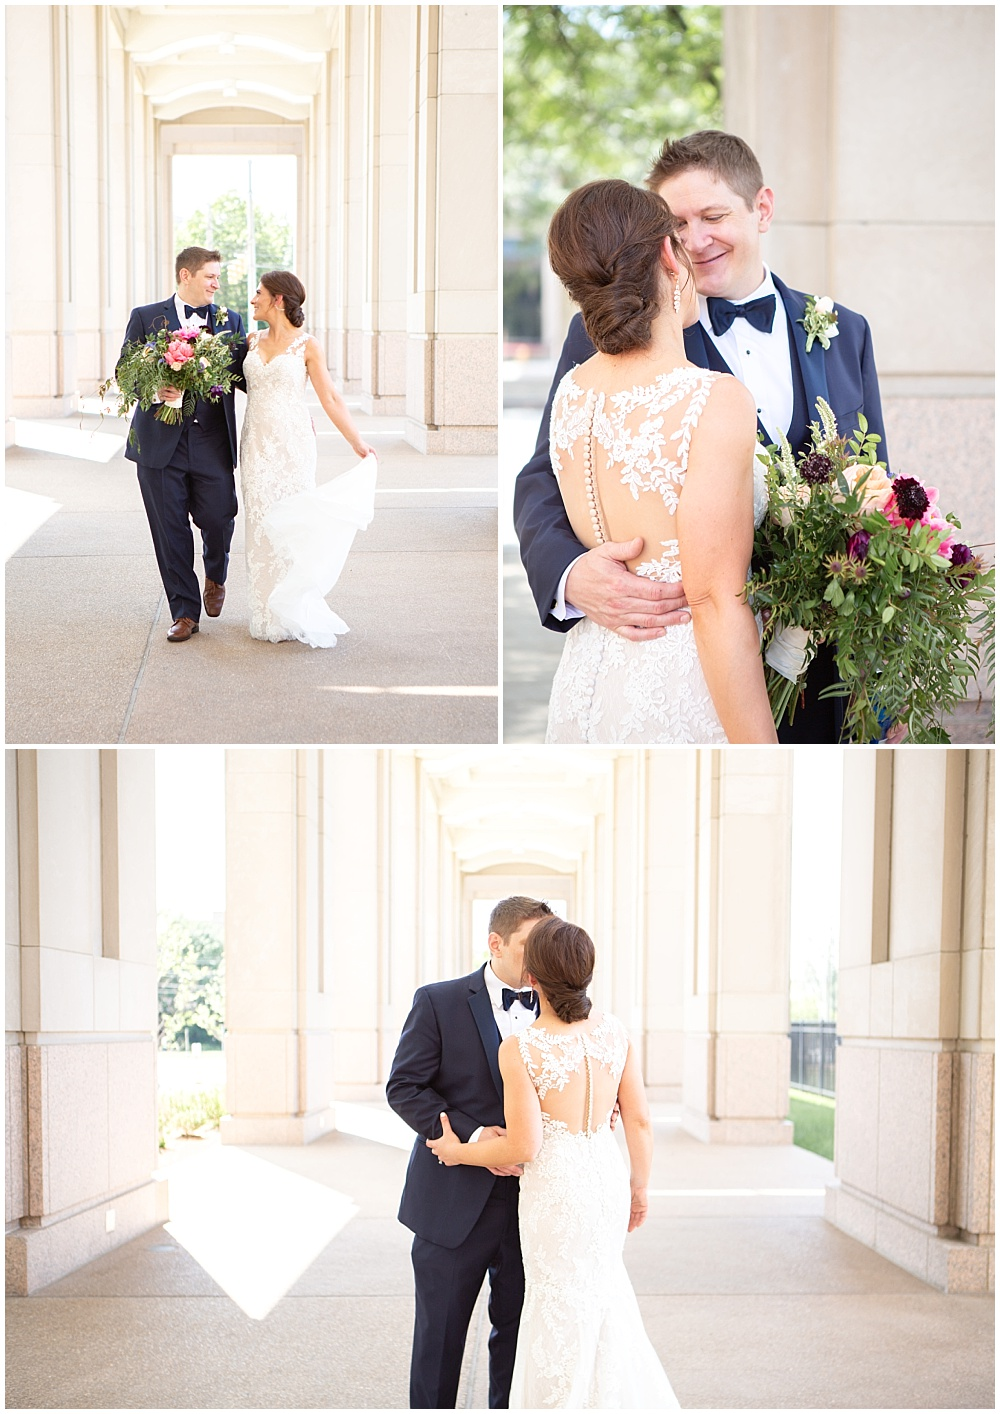 bride and groom portraits, white wedding dress, lace wedding dress, bridal gown, bold wedding flowers, Colorful, modern wedding at The Alexander Hotel | Conforti Photography and Jessica Dum Wedding Coordination